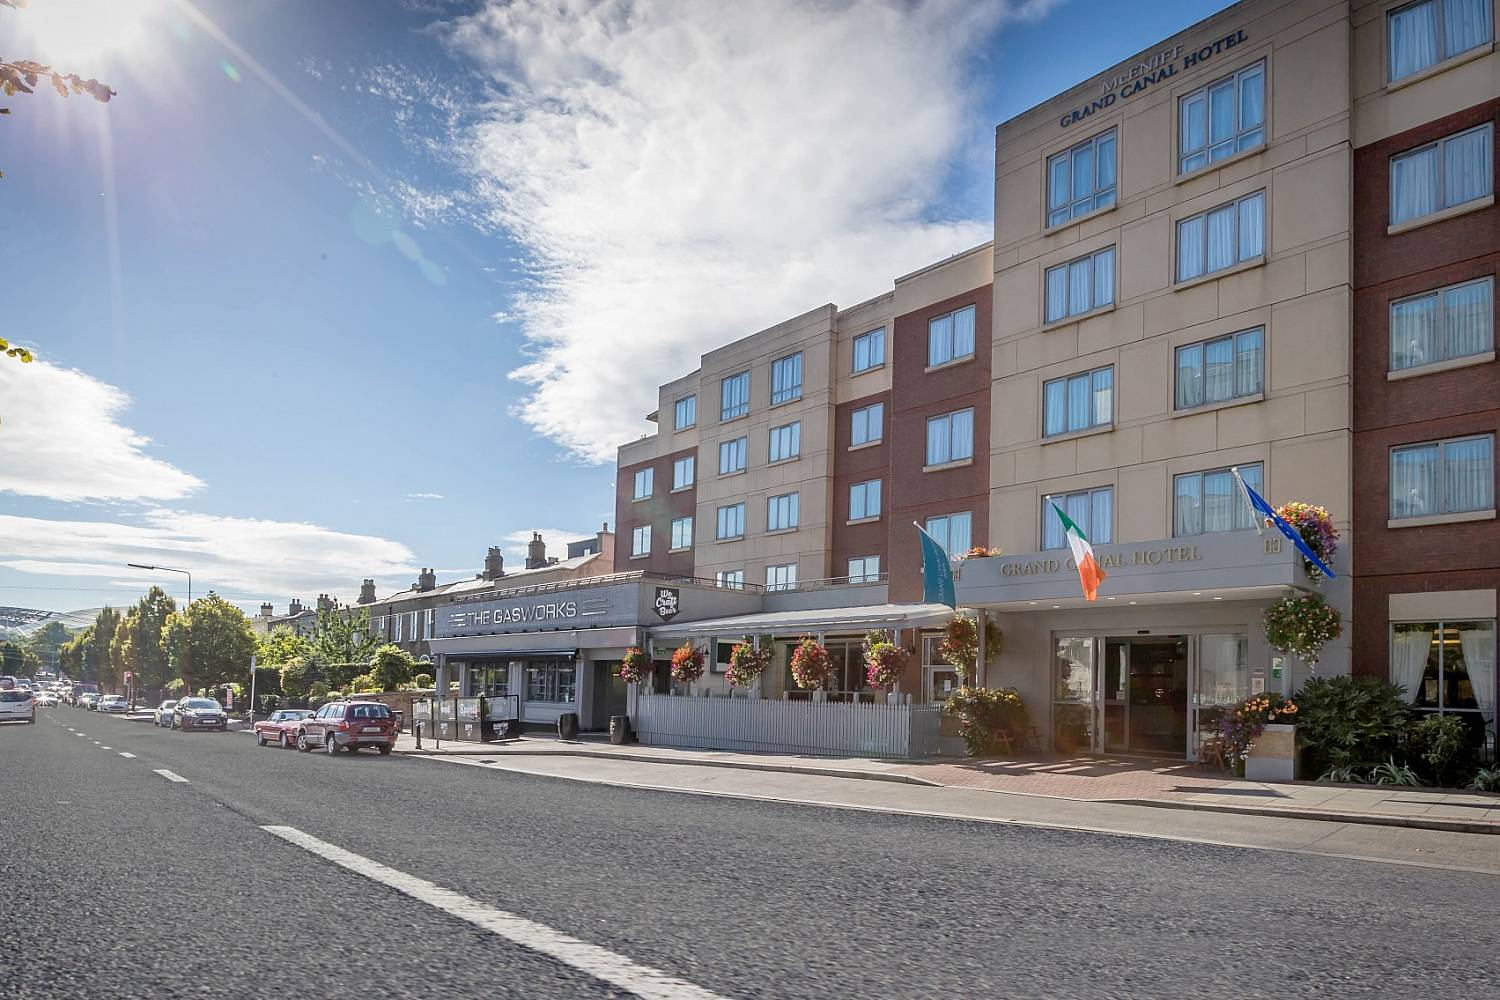 Image result for Grand Canal Hotel, Dublin